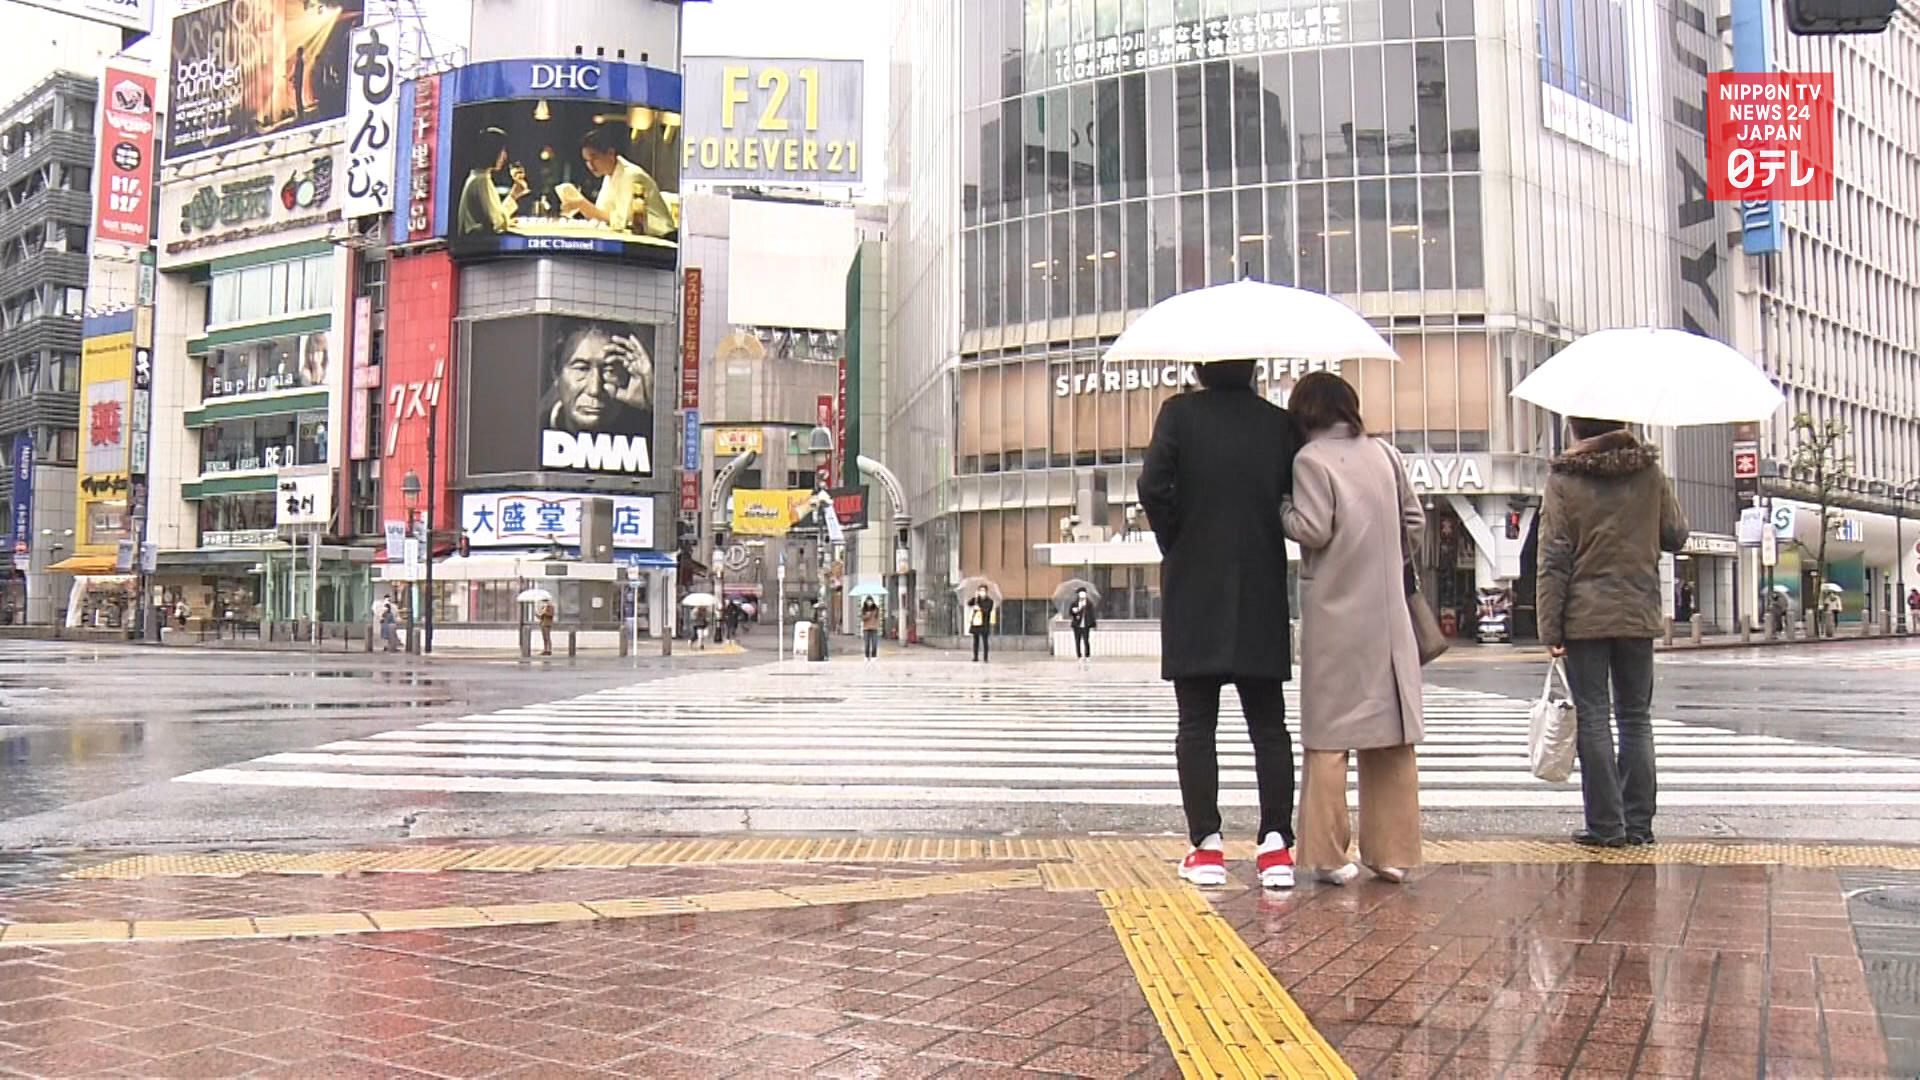 Tokyo sees a record 201 coronavirus cases in one day